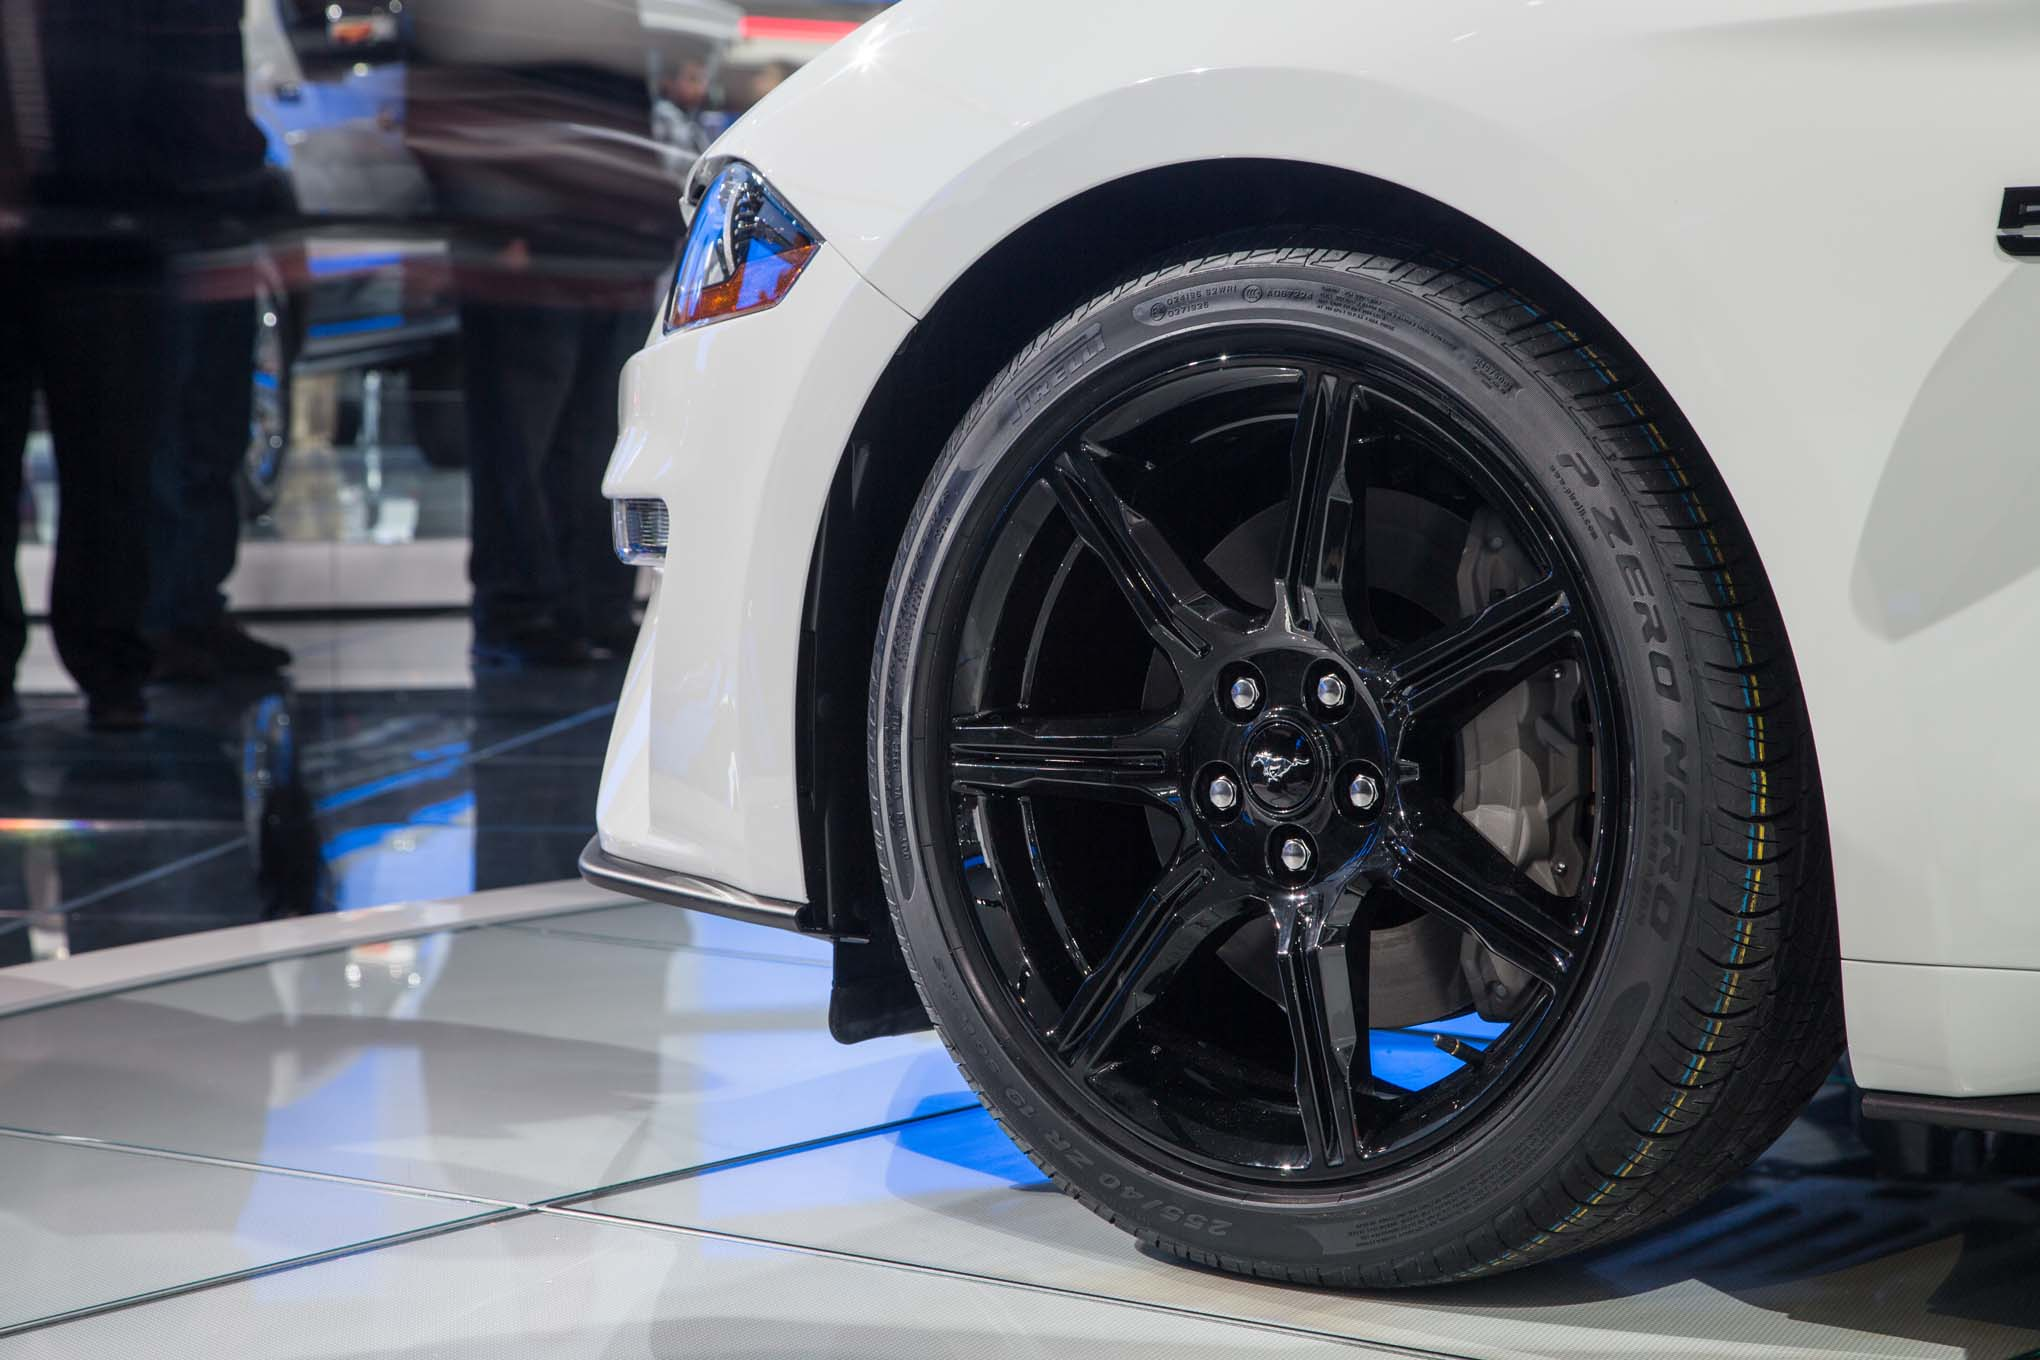 2018-Ford-Mustang-GT-wheel